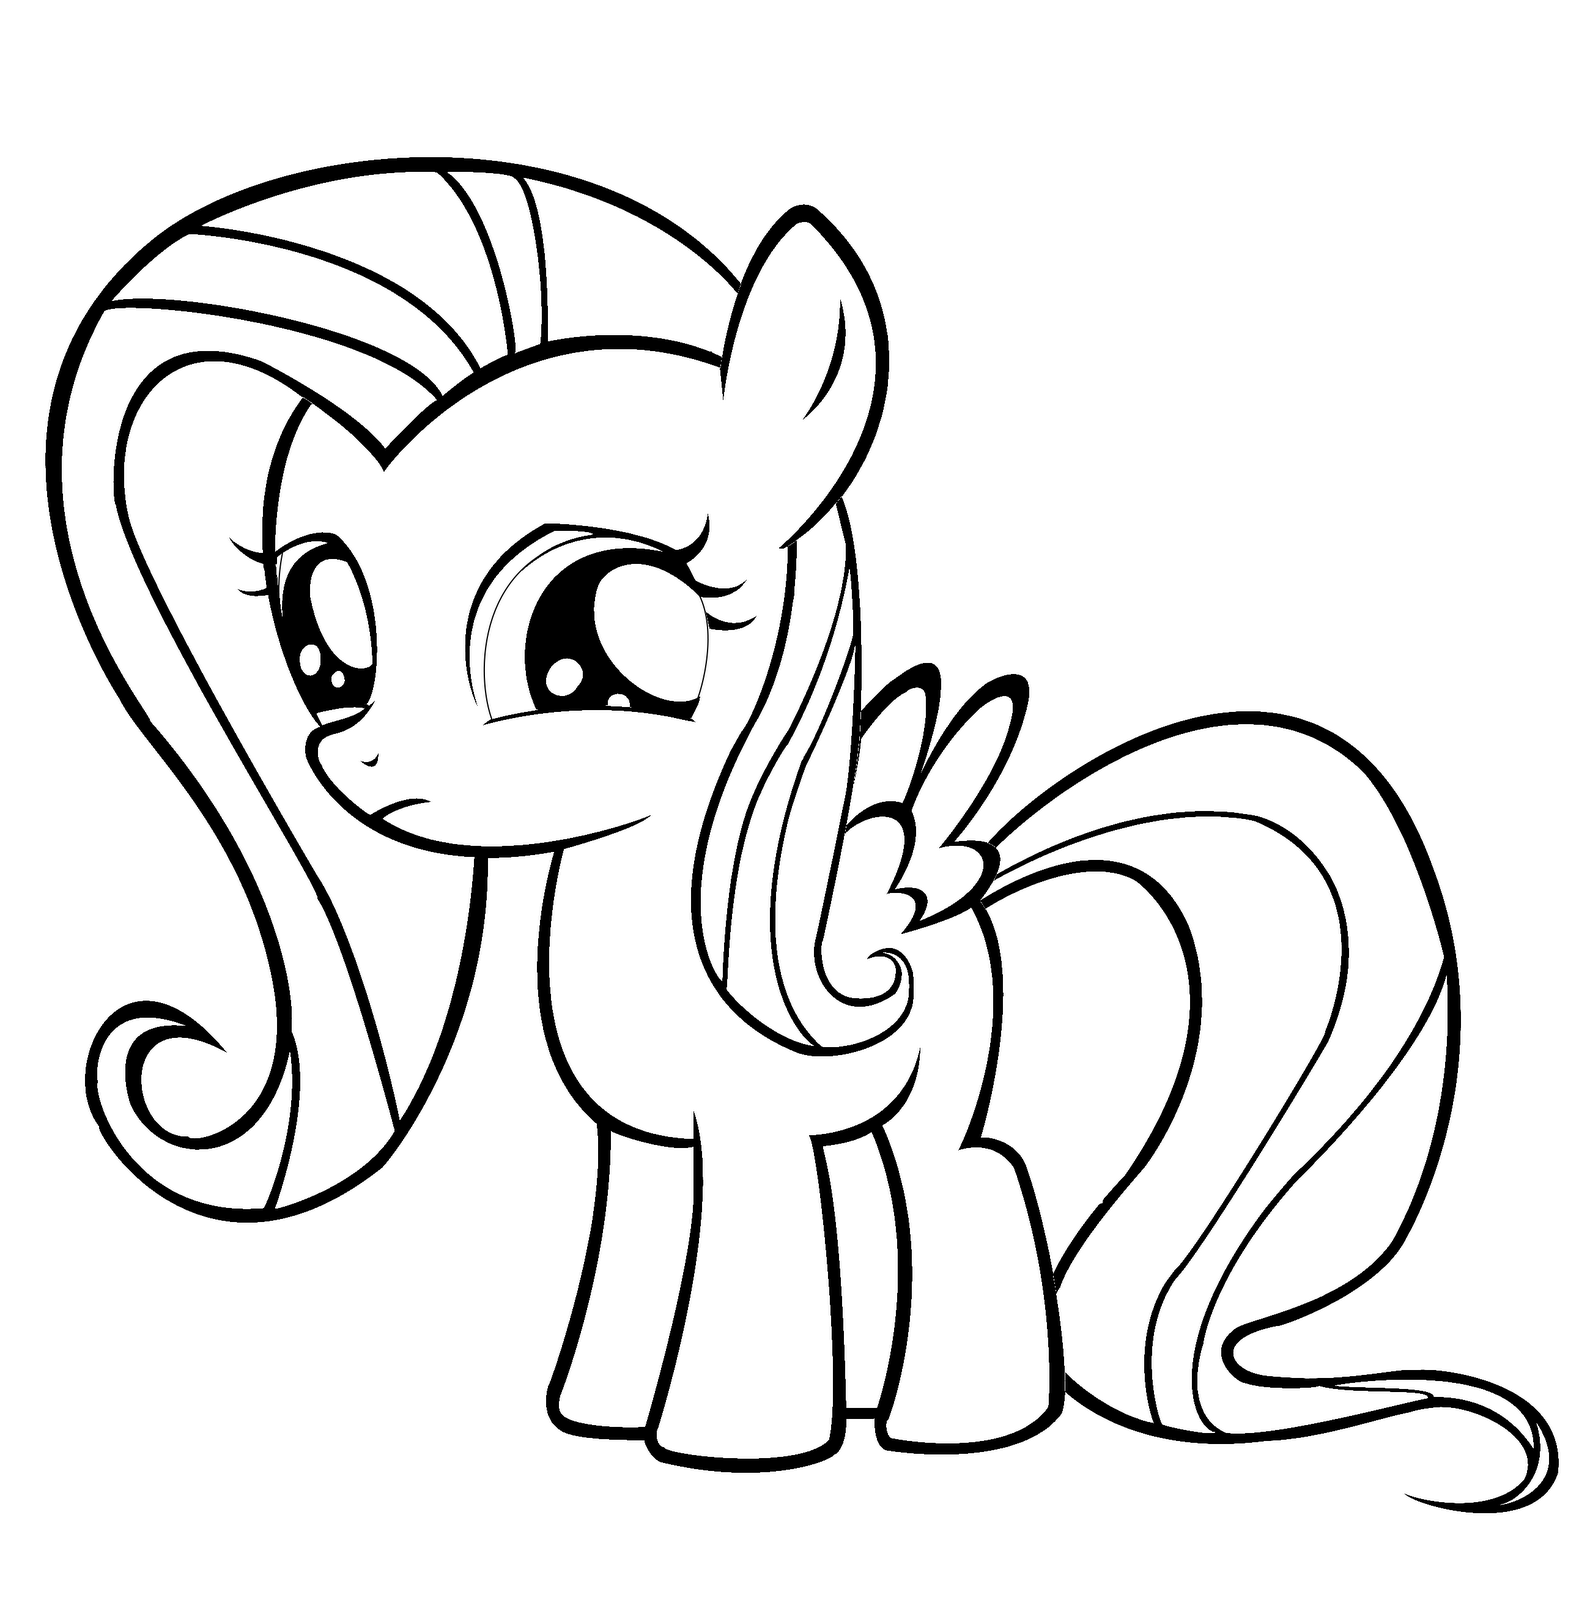 my little pony friendship is magic coloring pages fluttershy coloring pages - Pony Coloring Pages